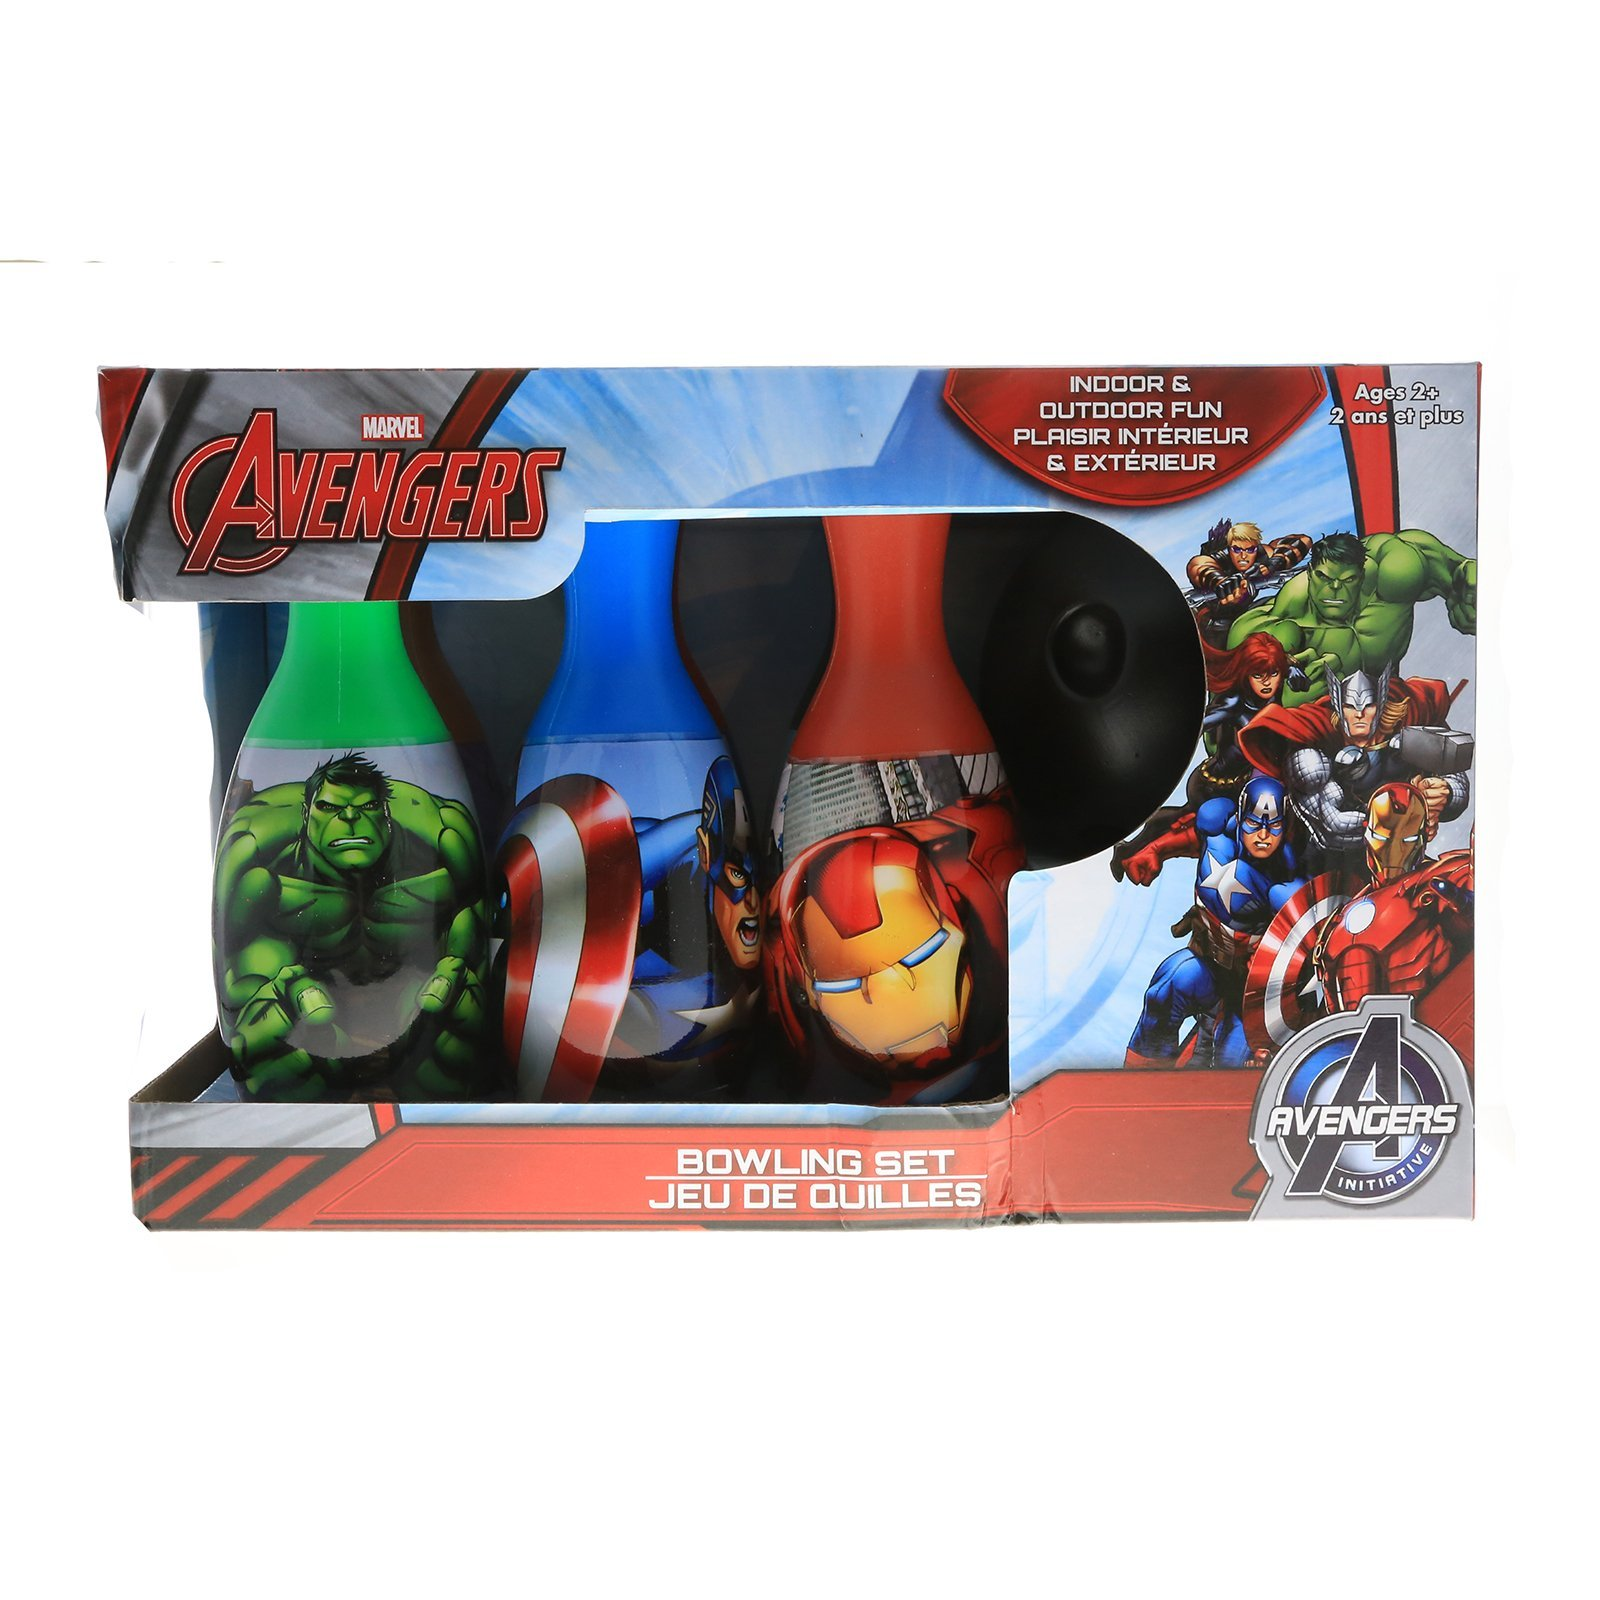 Marvel Avengers Heroes Bowling Pin Party Indoor Outdoor Family Play Set